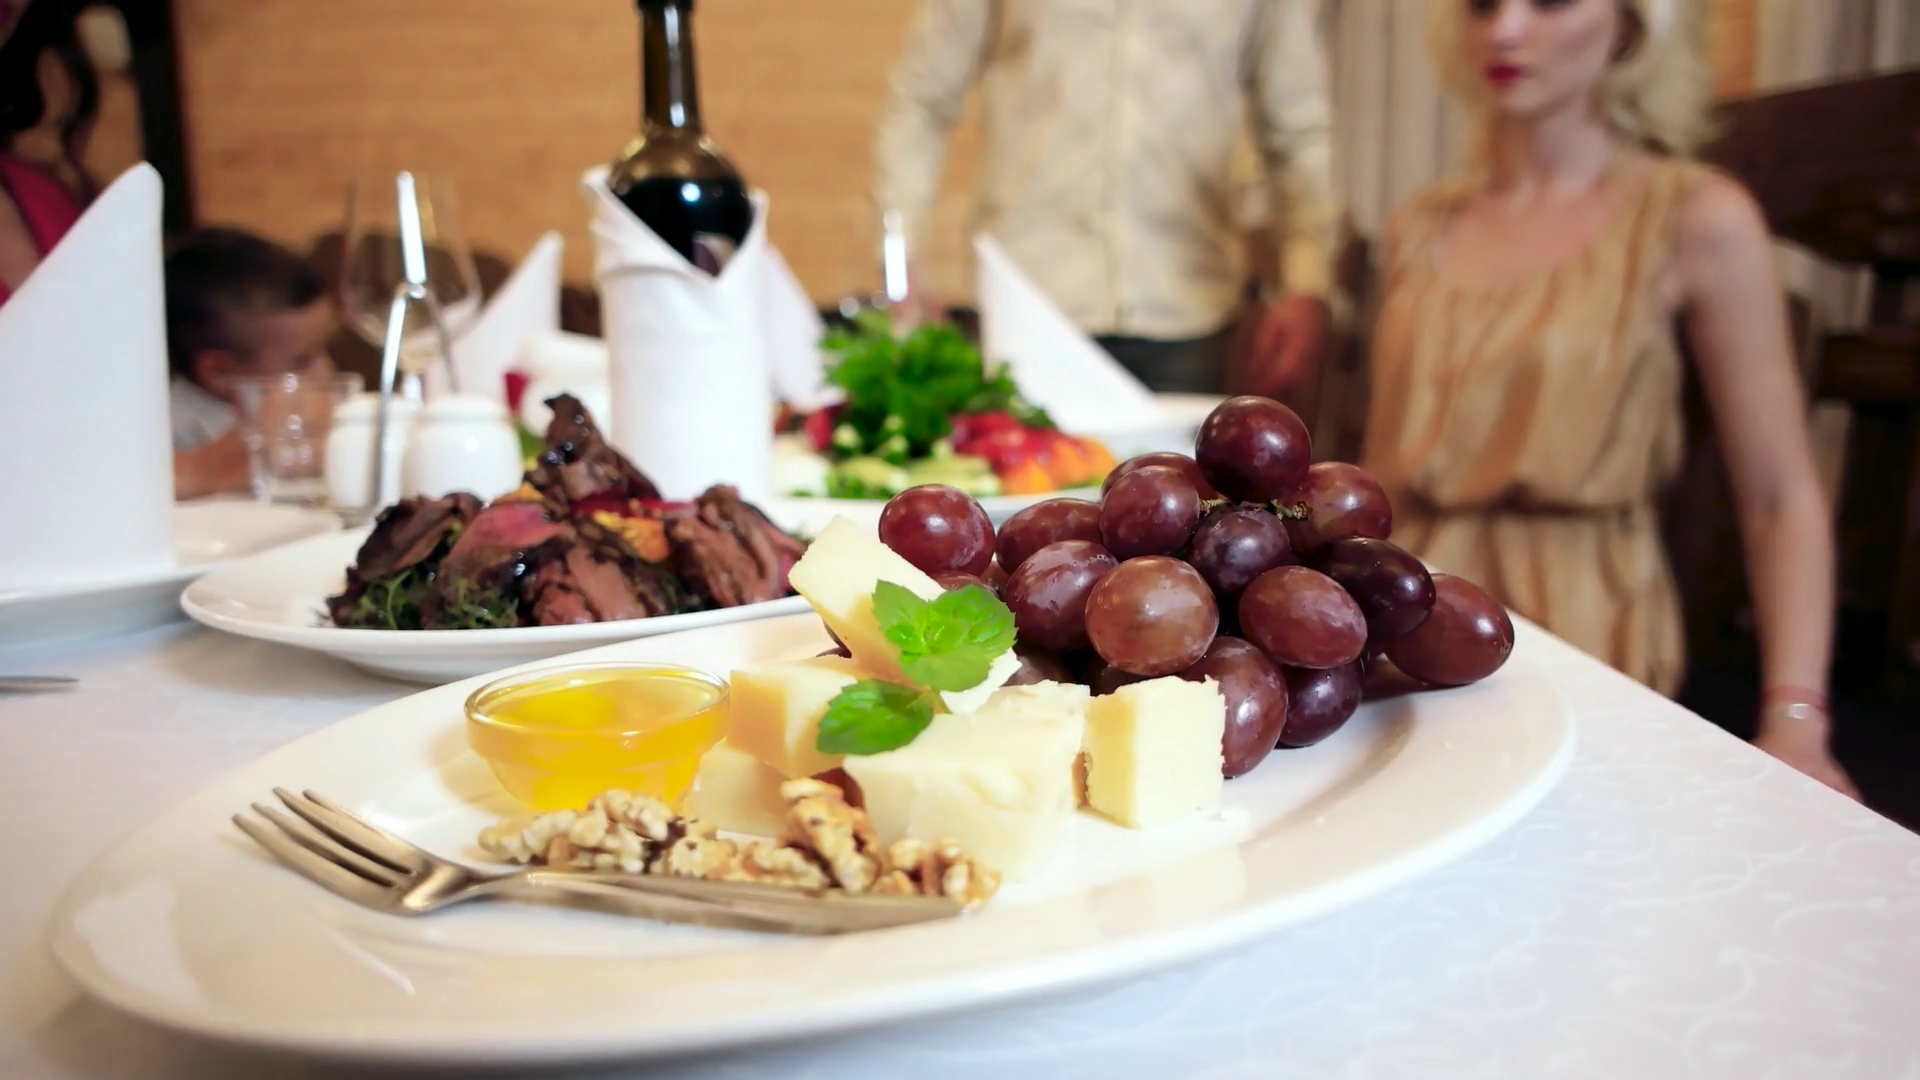 delicious food on table in the restaurant, meat, grapes, cheese ...